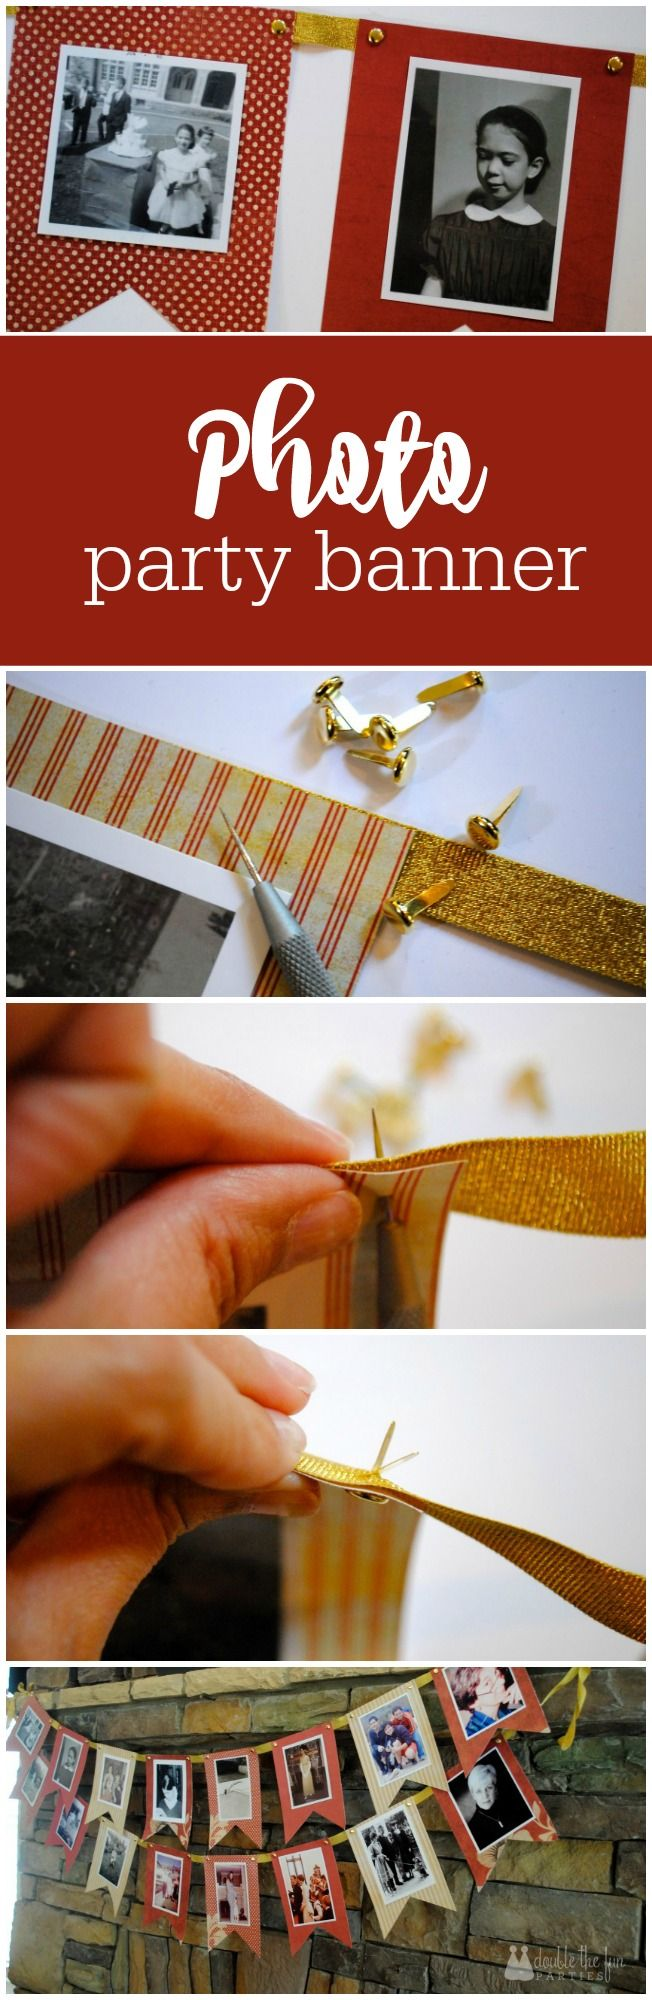 How to make a DIY photo party banner - great for any age birthday party by The Party Teacher | http://thepartyteacher.com/2013/04/30/tutorial-brass-fastner-banner/